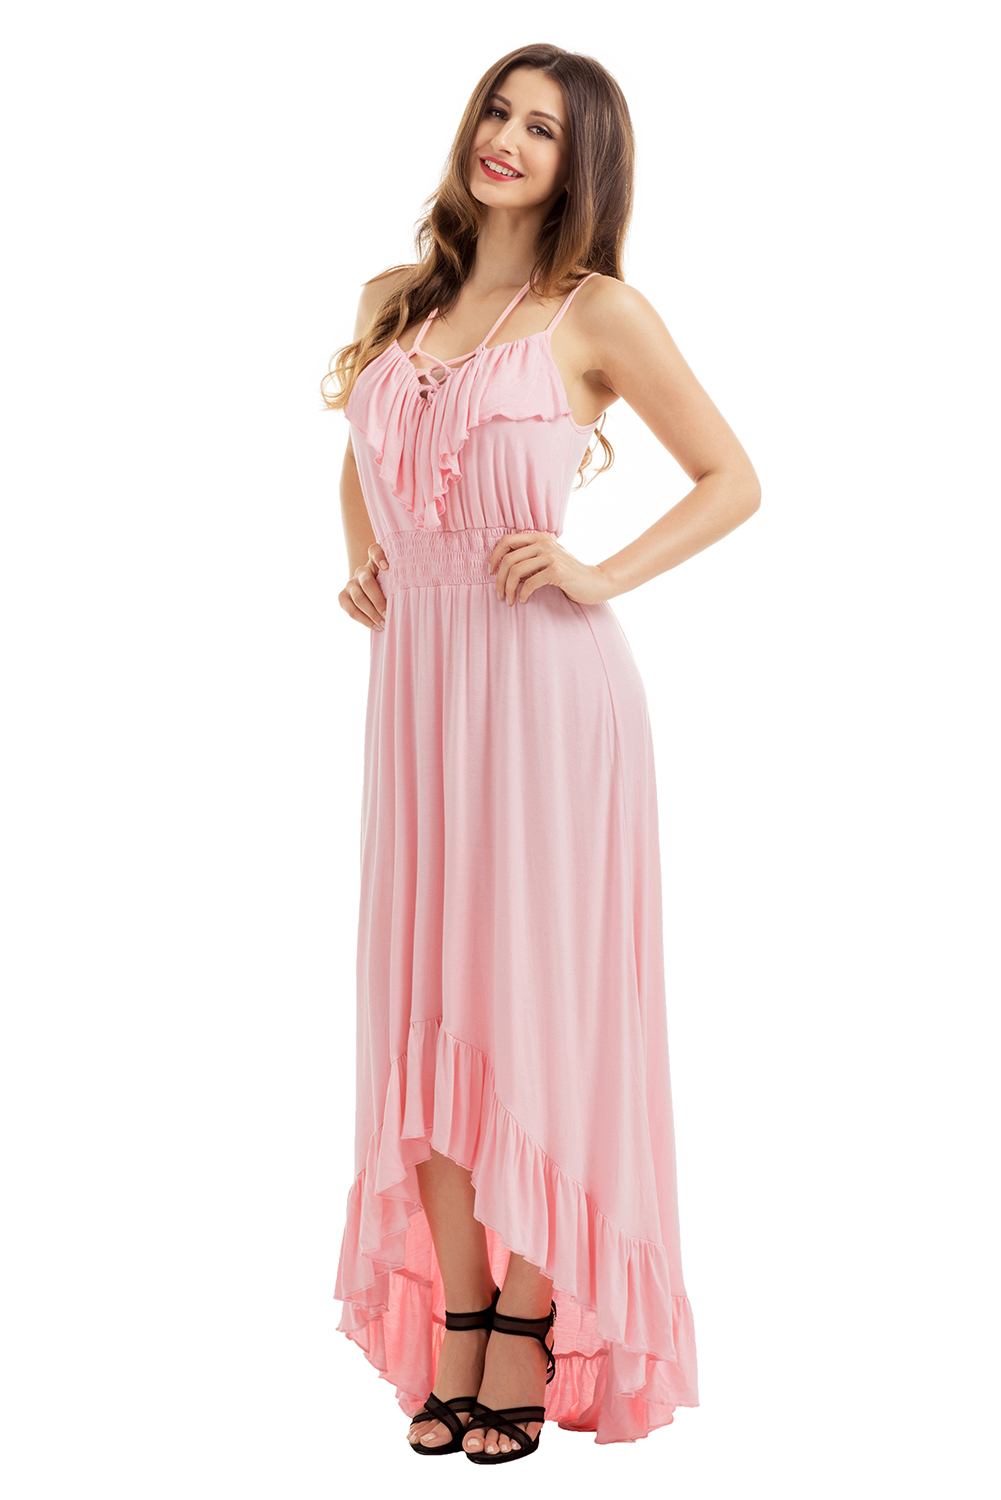 Lace-up-v-neck-ruffle-hi-low-maxi-  sc 1 st  eBay & Lace up v neck ruffle hi-low maxi dress high low cocktail evening ...